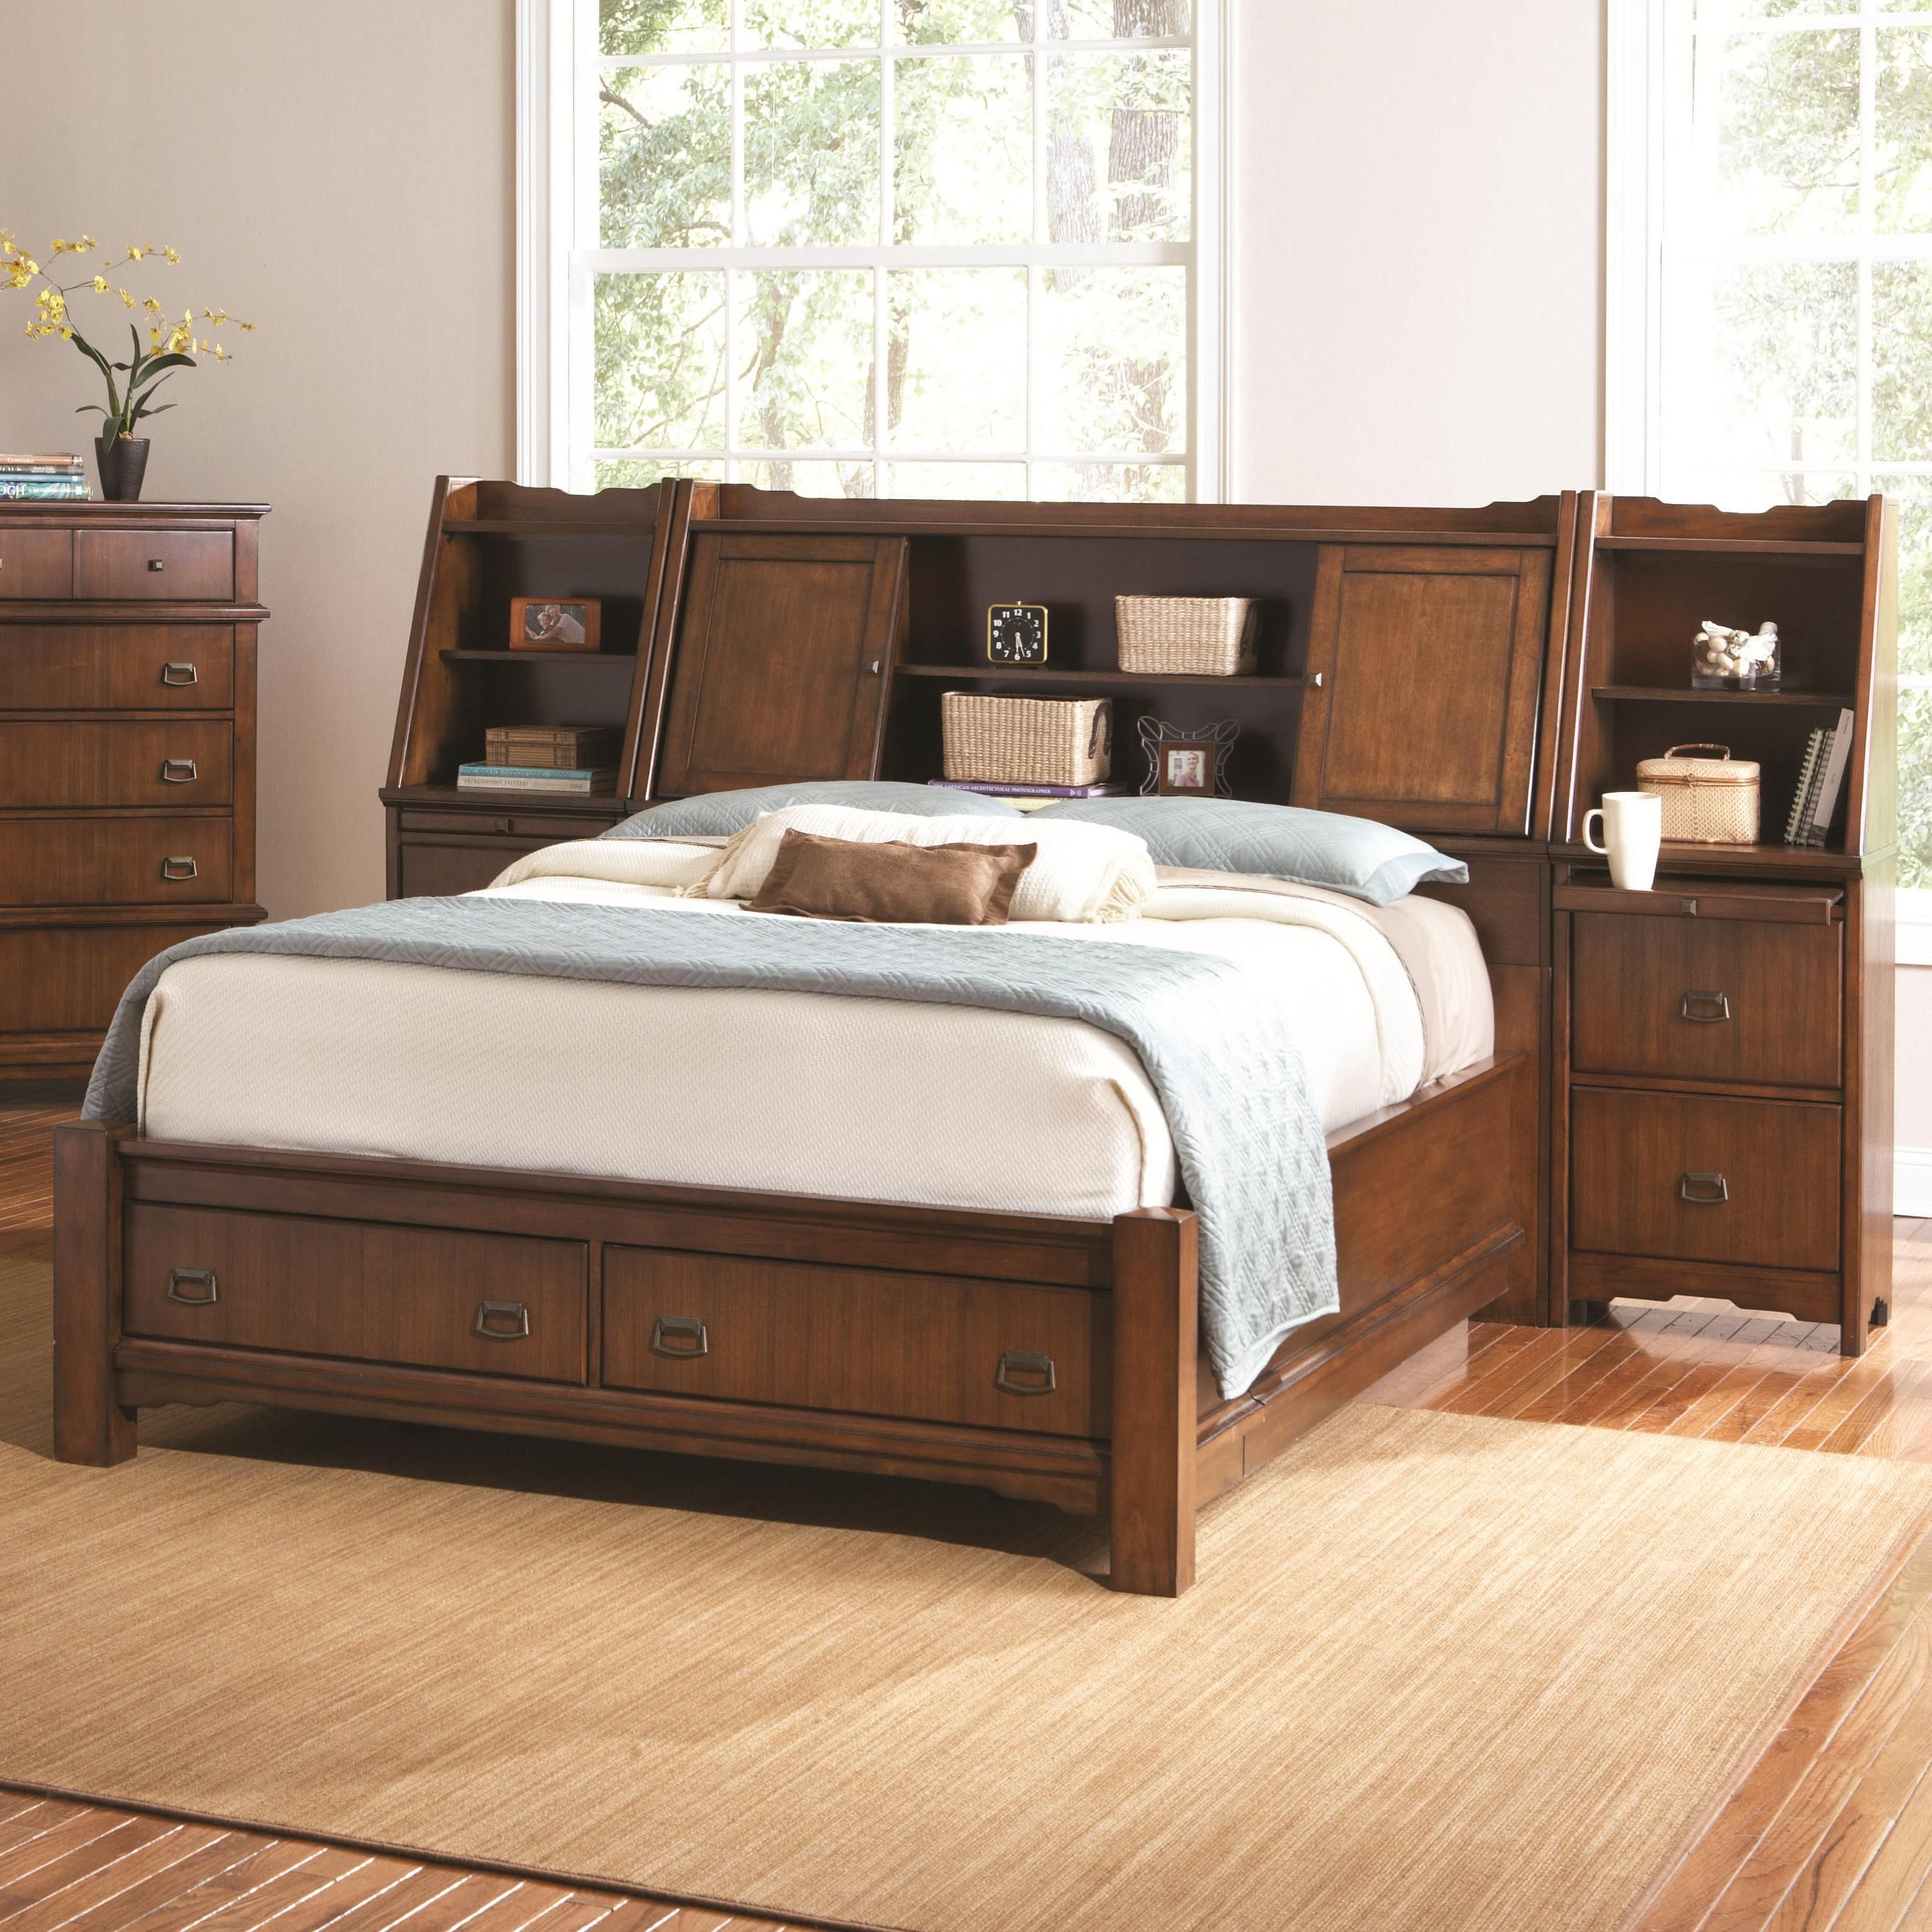 46 Beautiful Lovely Solid Wood Bedroom Set Ideas Headboard